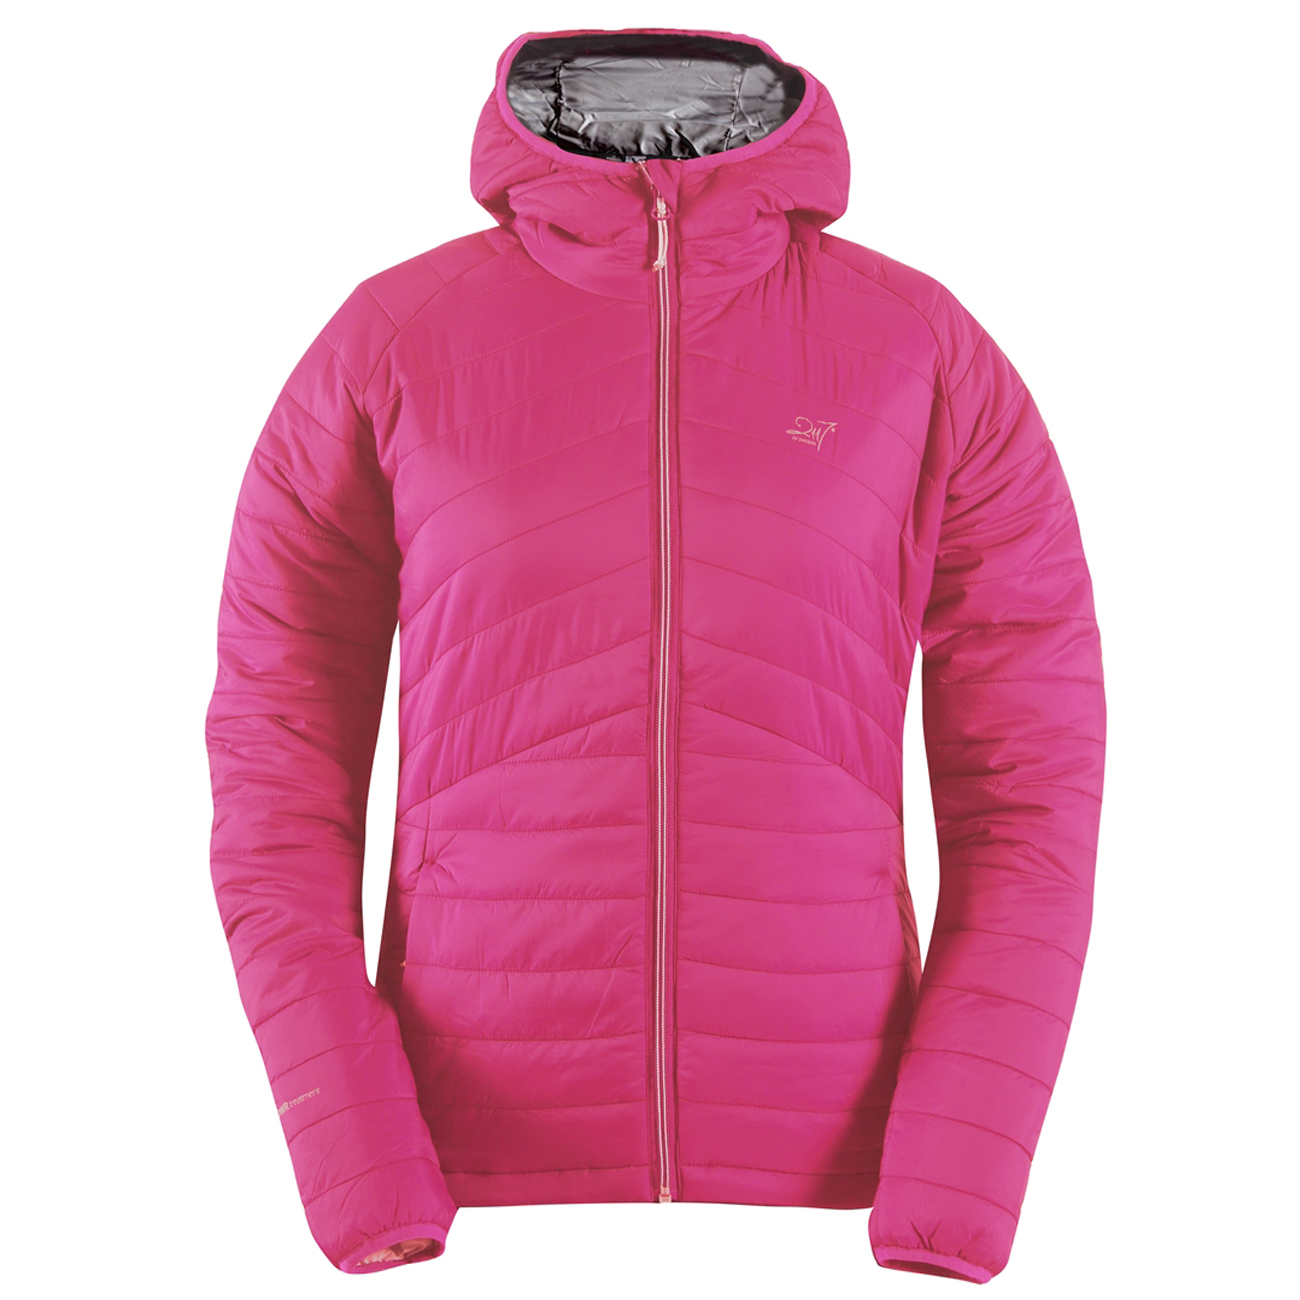 2117 of Sweden Damen Daunenjacke Outdoorjacke Jacke Rutvik